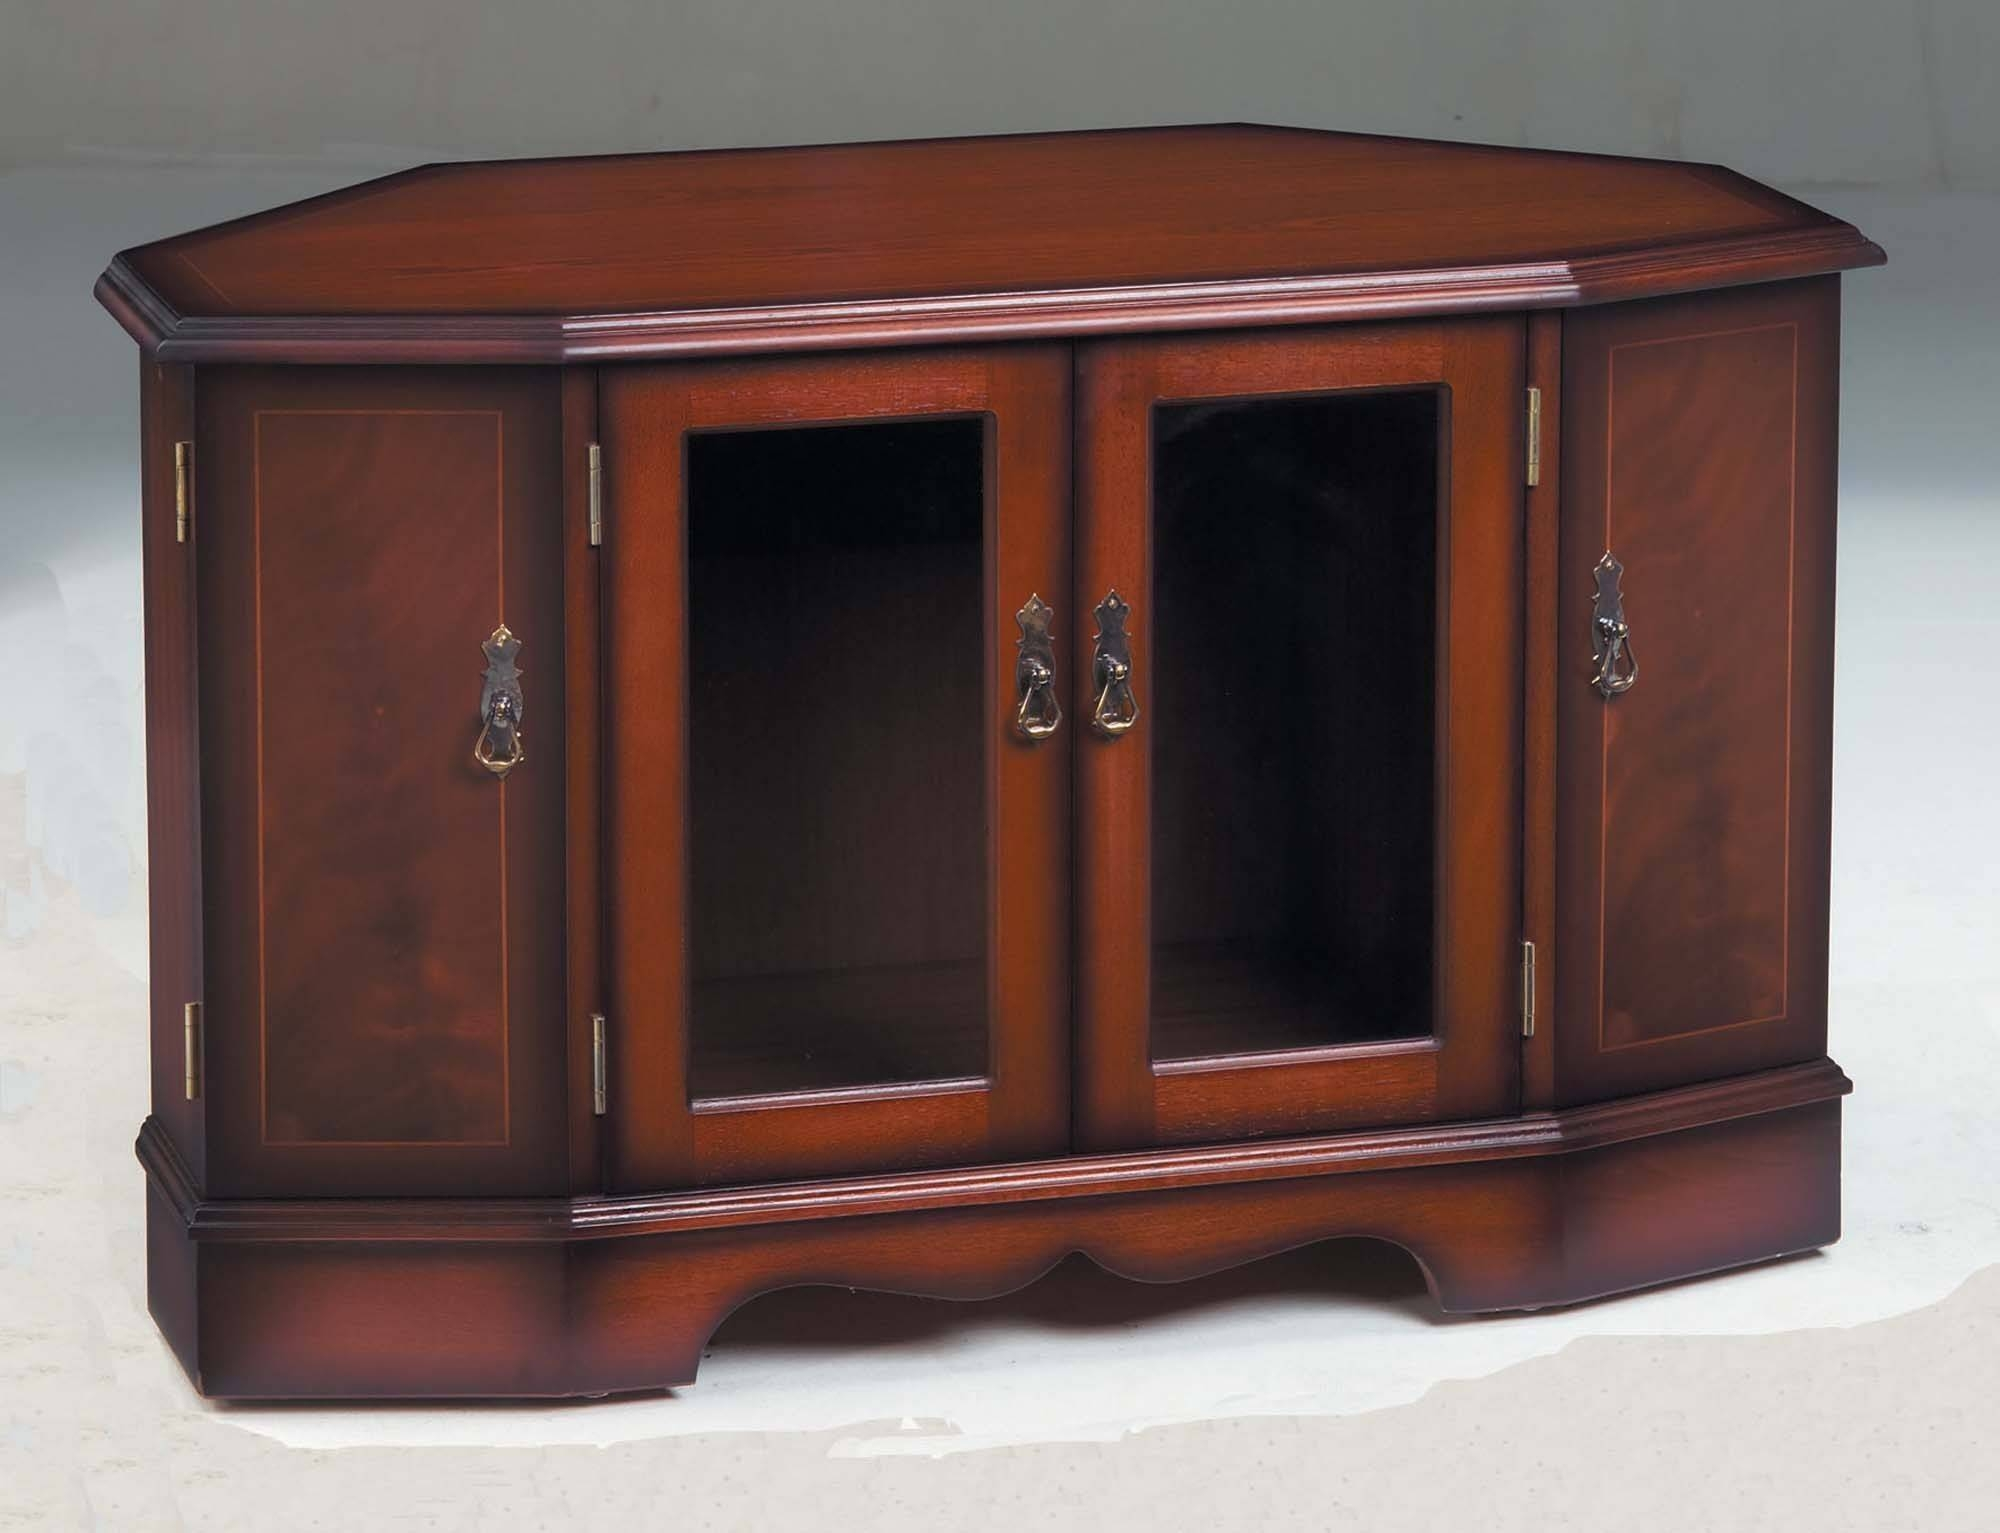 Strongbow Mahogany 1037 Corner Tv Cabinet | Tr Hayes - Furniture for Mahogany Tv Stands (Image 14 of 15)